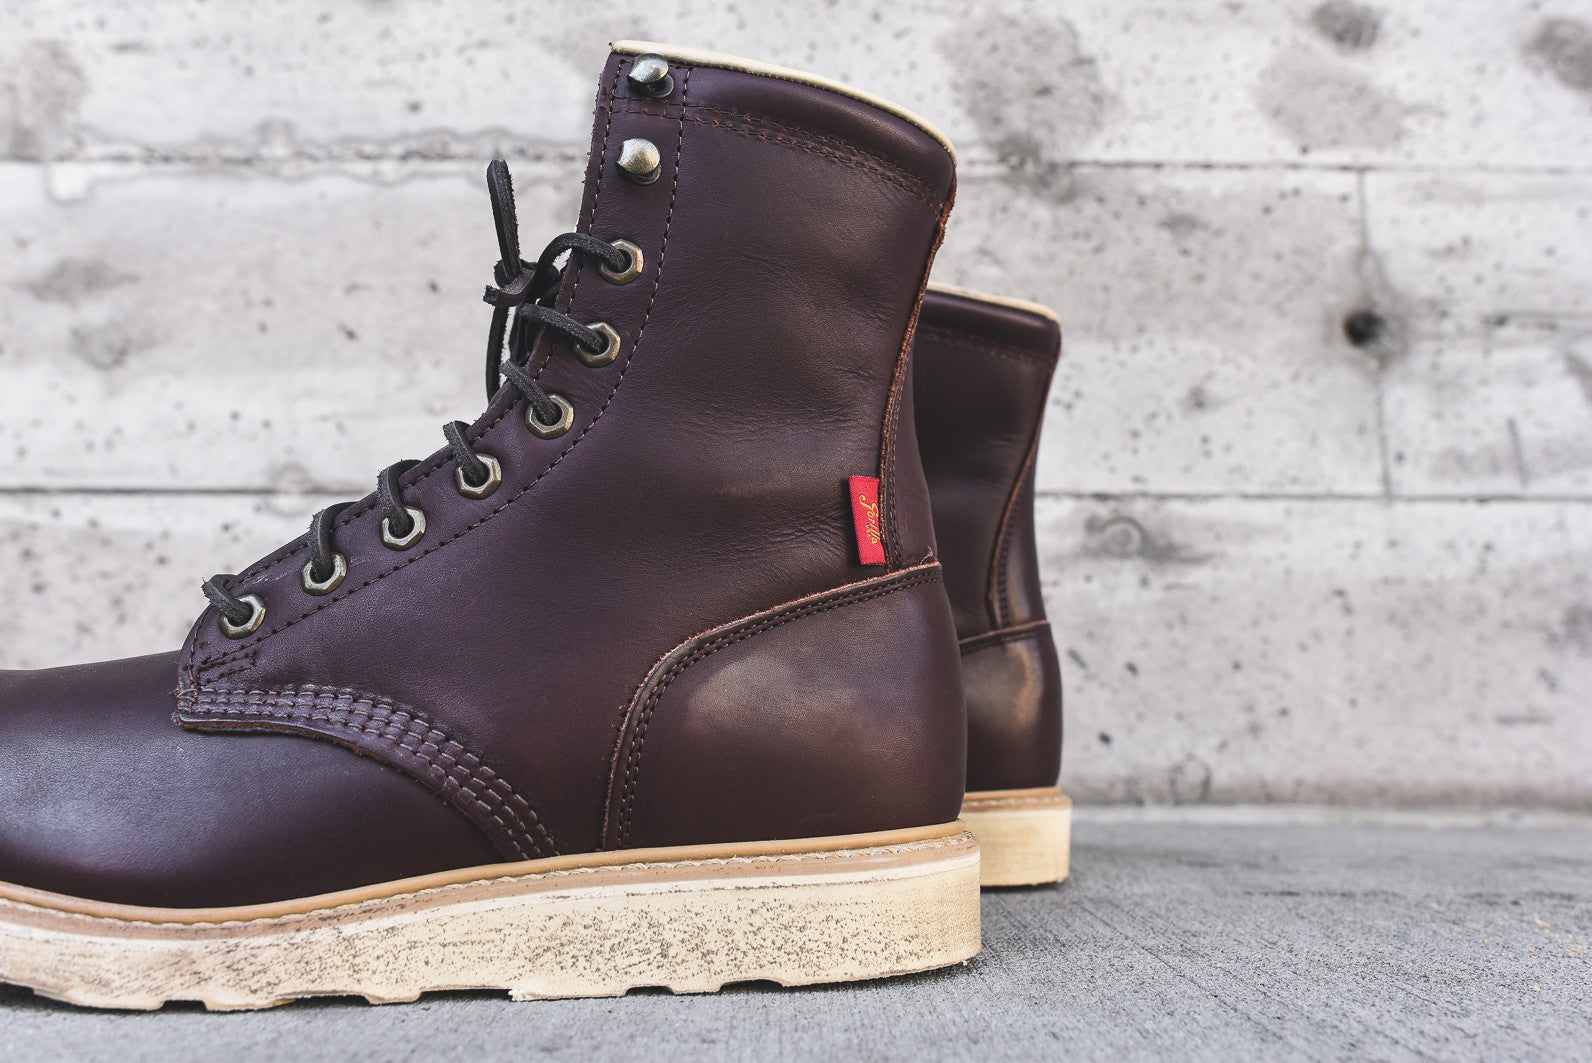 Gorilla USA High Boot - Chocolate